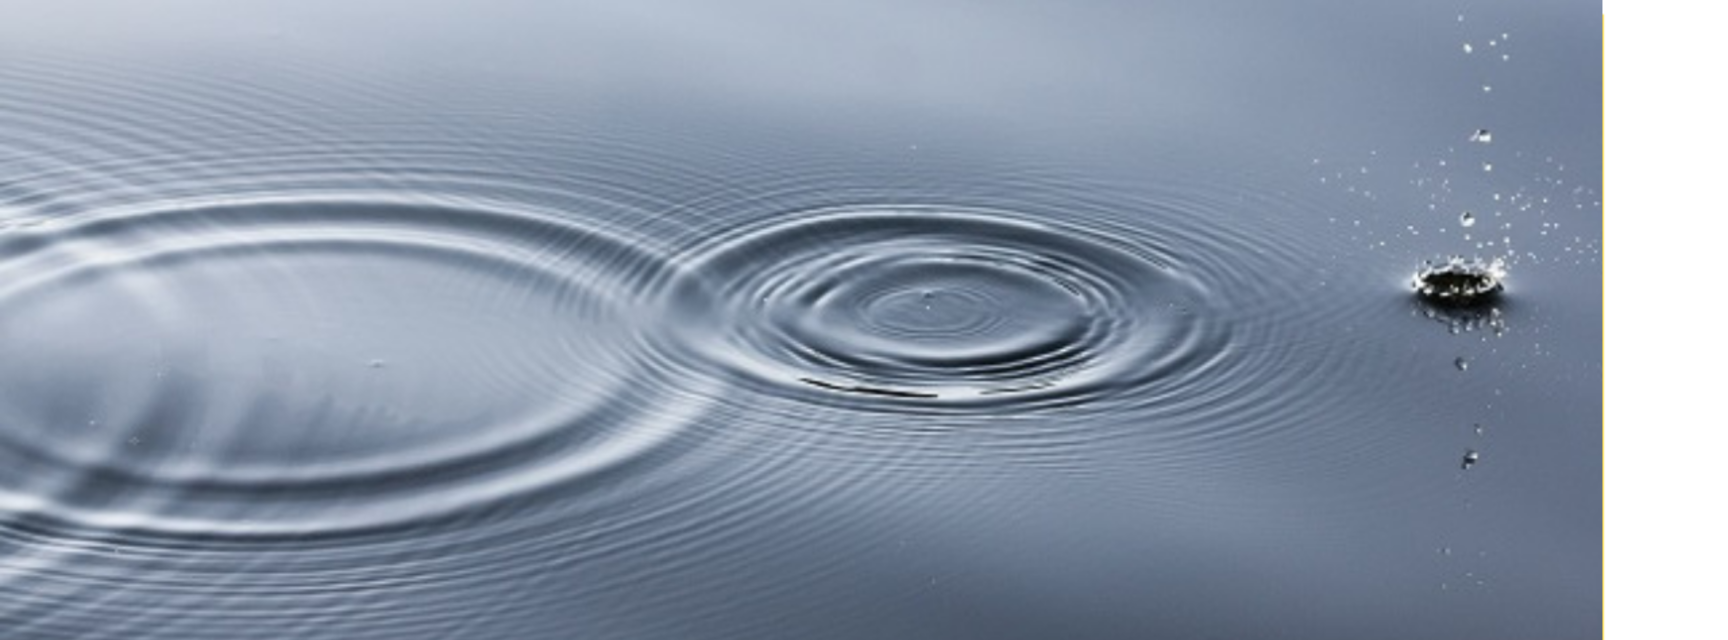 A series of circular ripples on calm water.